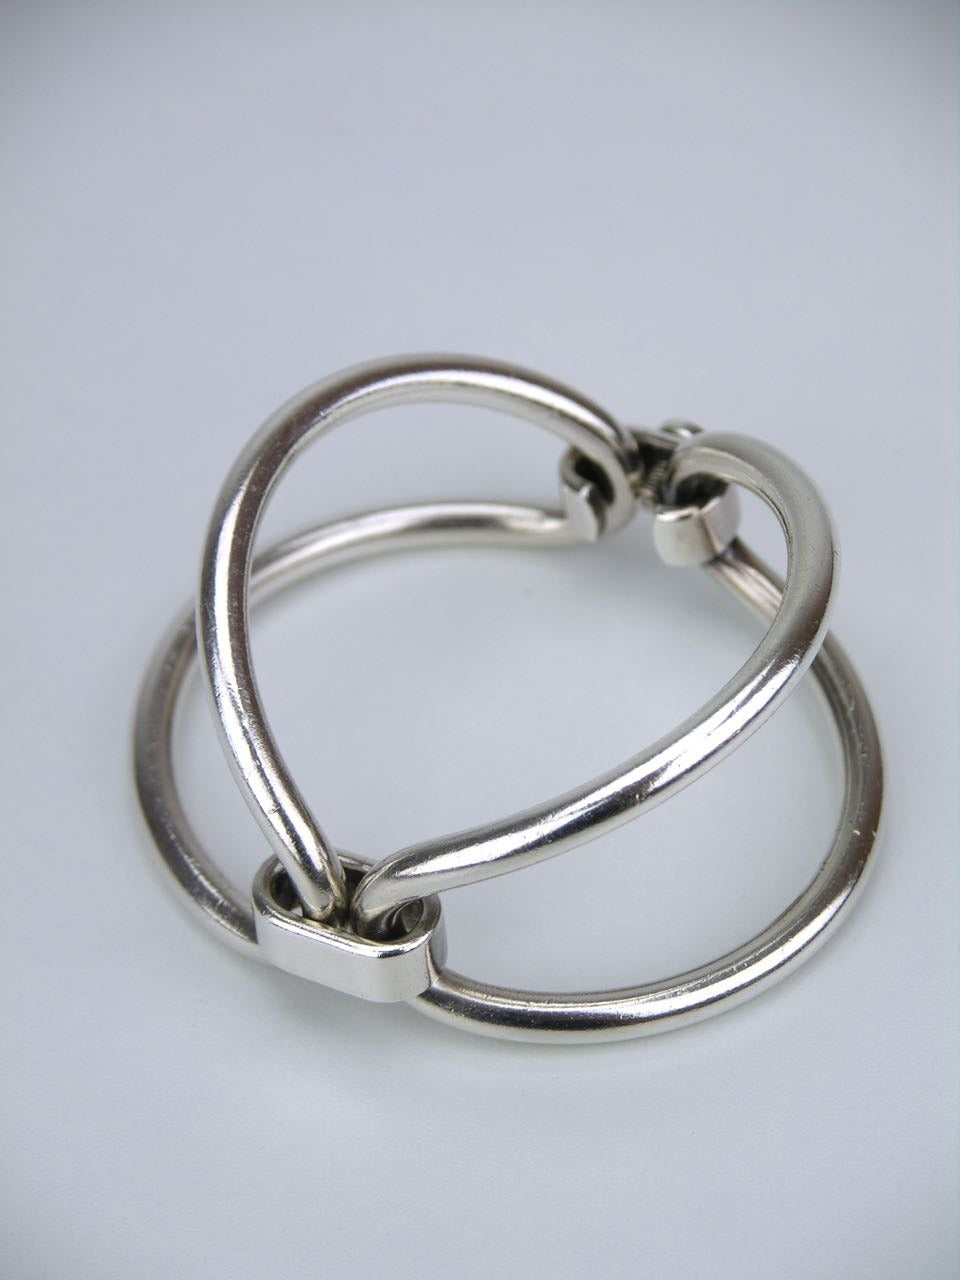 1960s Gucci Silver Double Loop Bracelet at 1stdibs